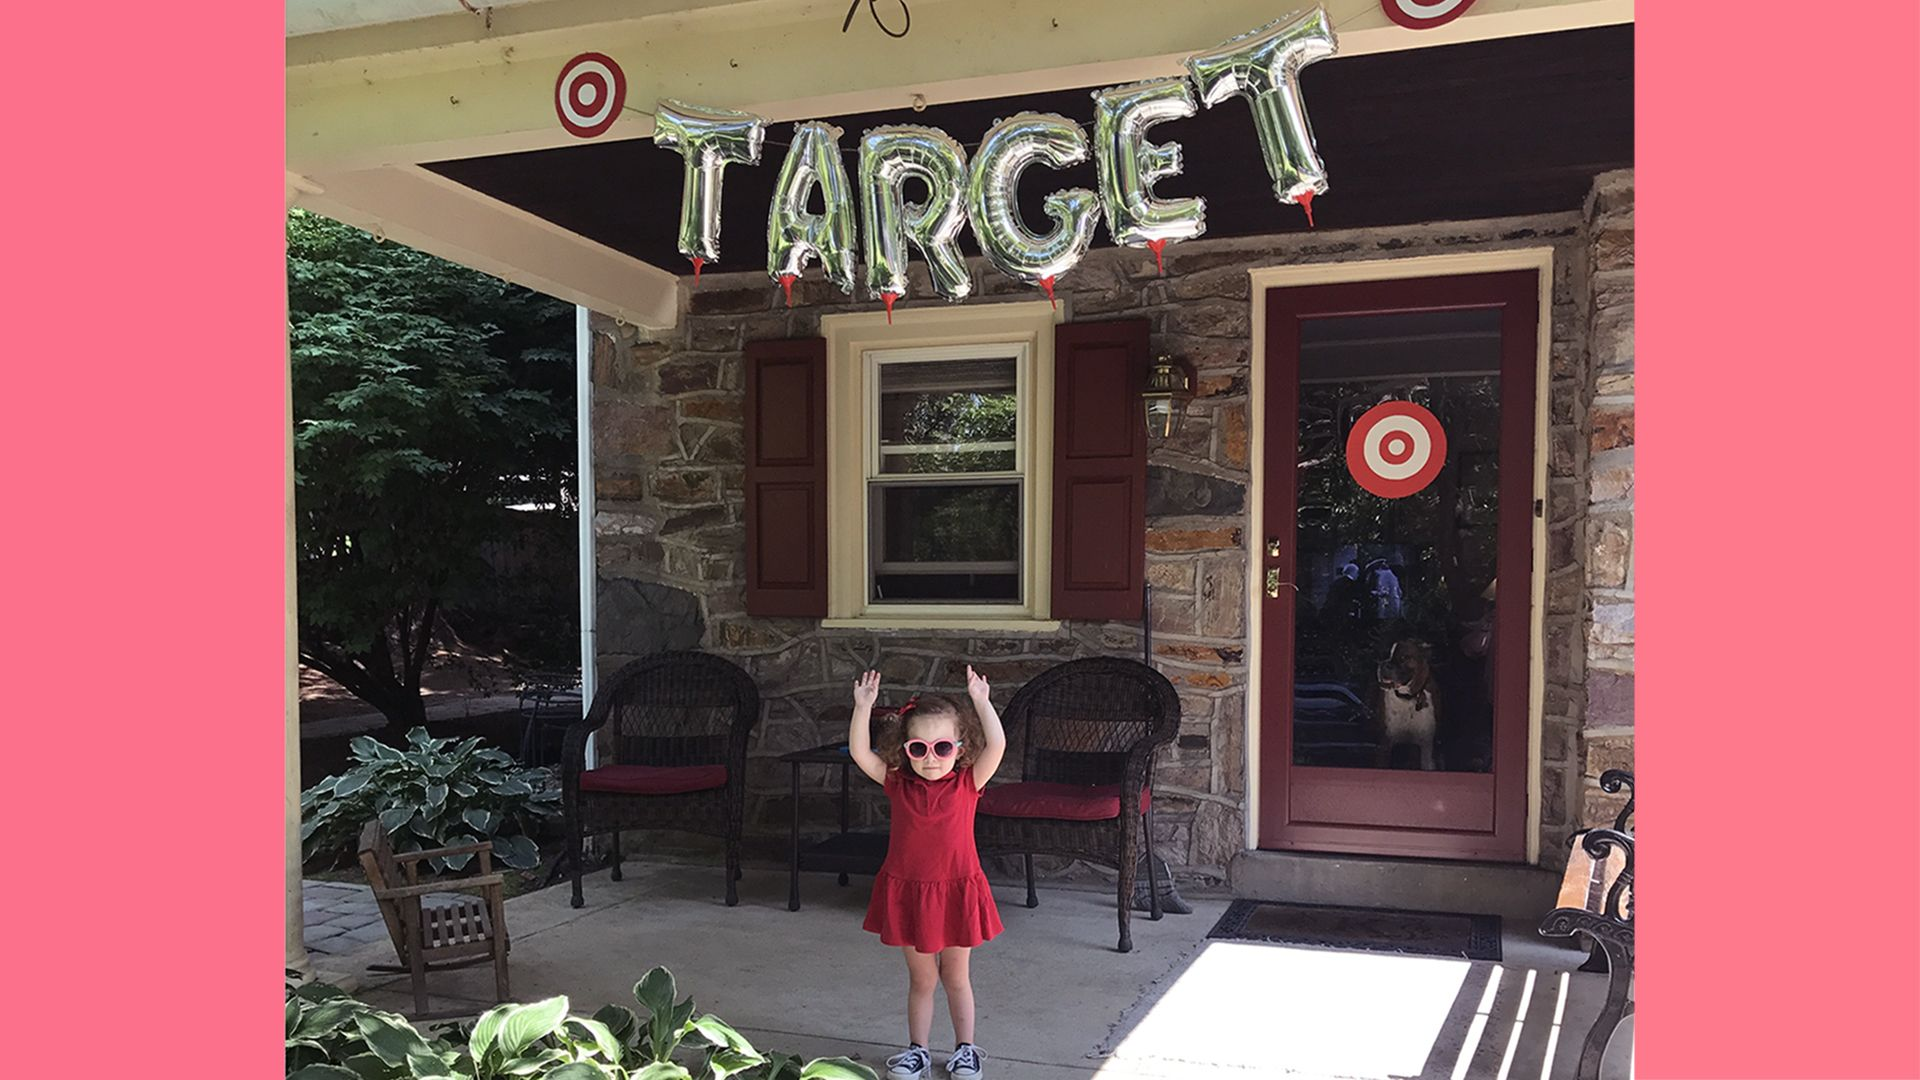 This girl requested a 'Target' birthday party —and her mom